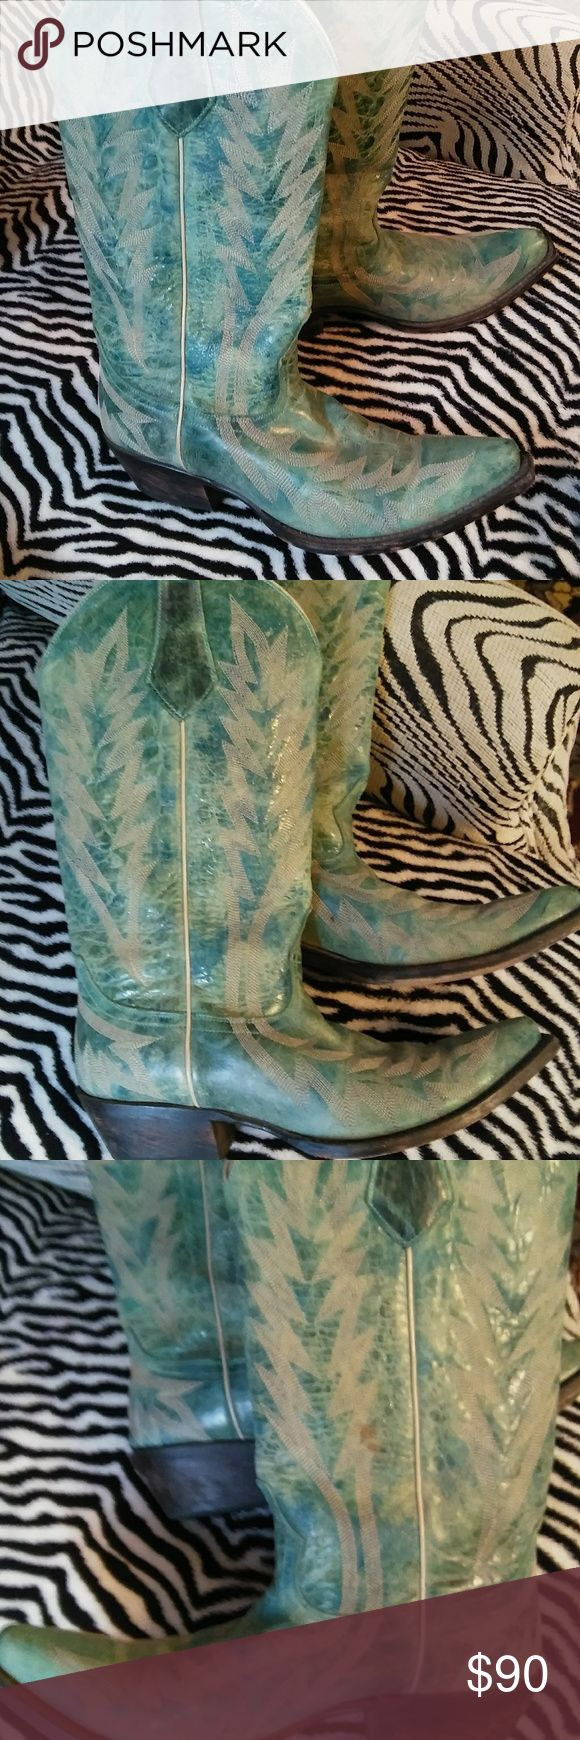 Johnny Ringo Boots!! Excellent condition. Beautiful color. Shoes